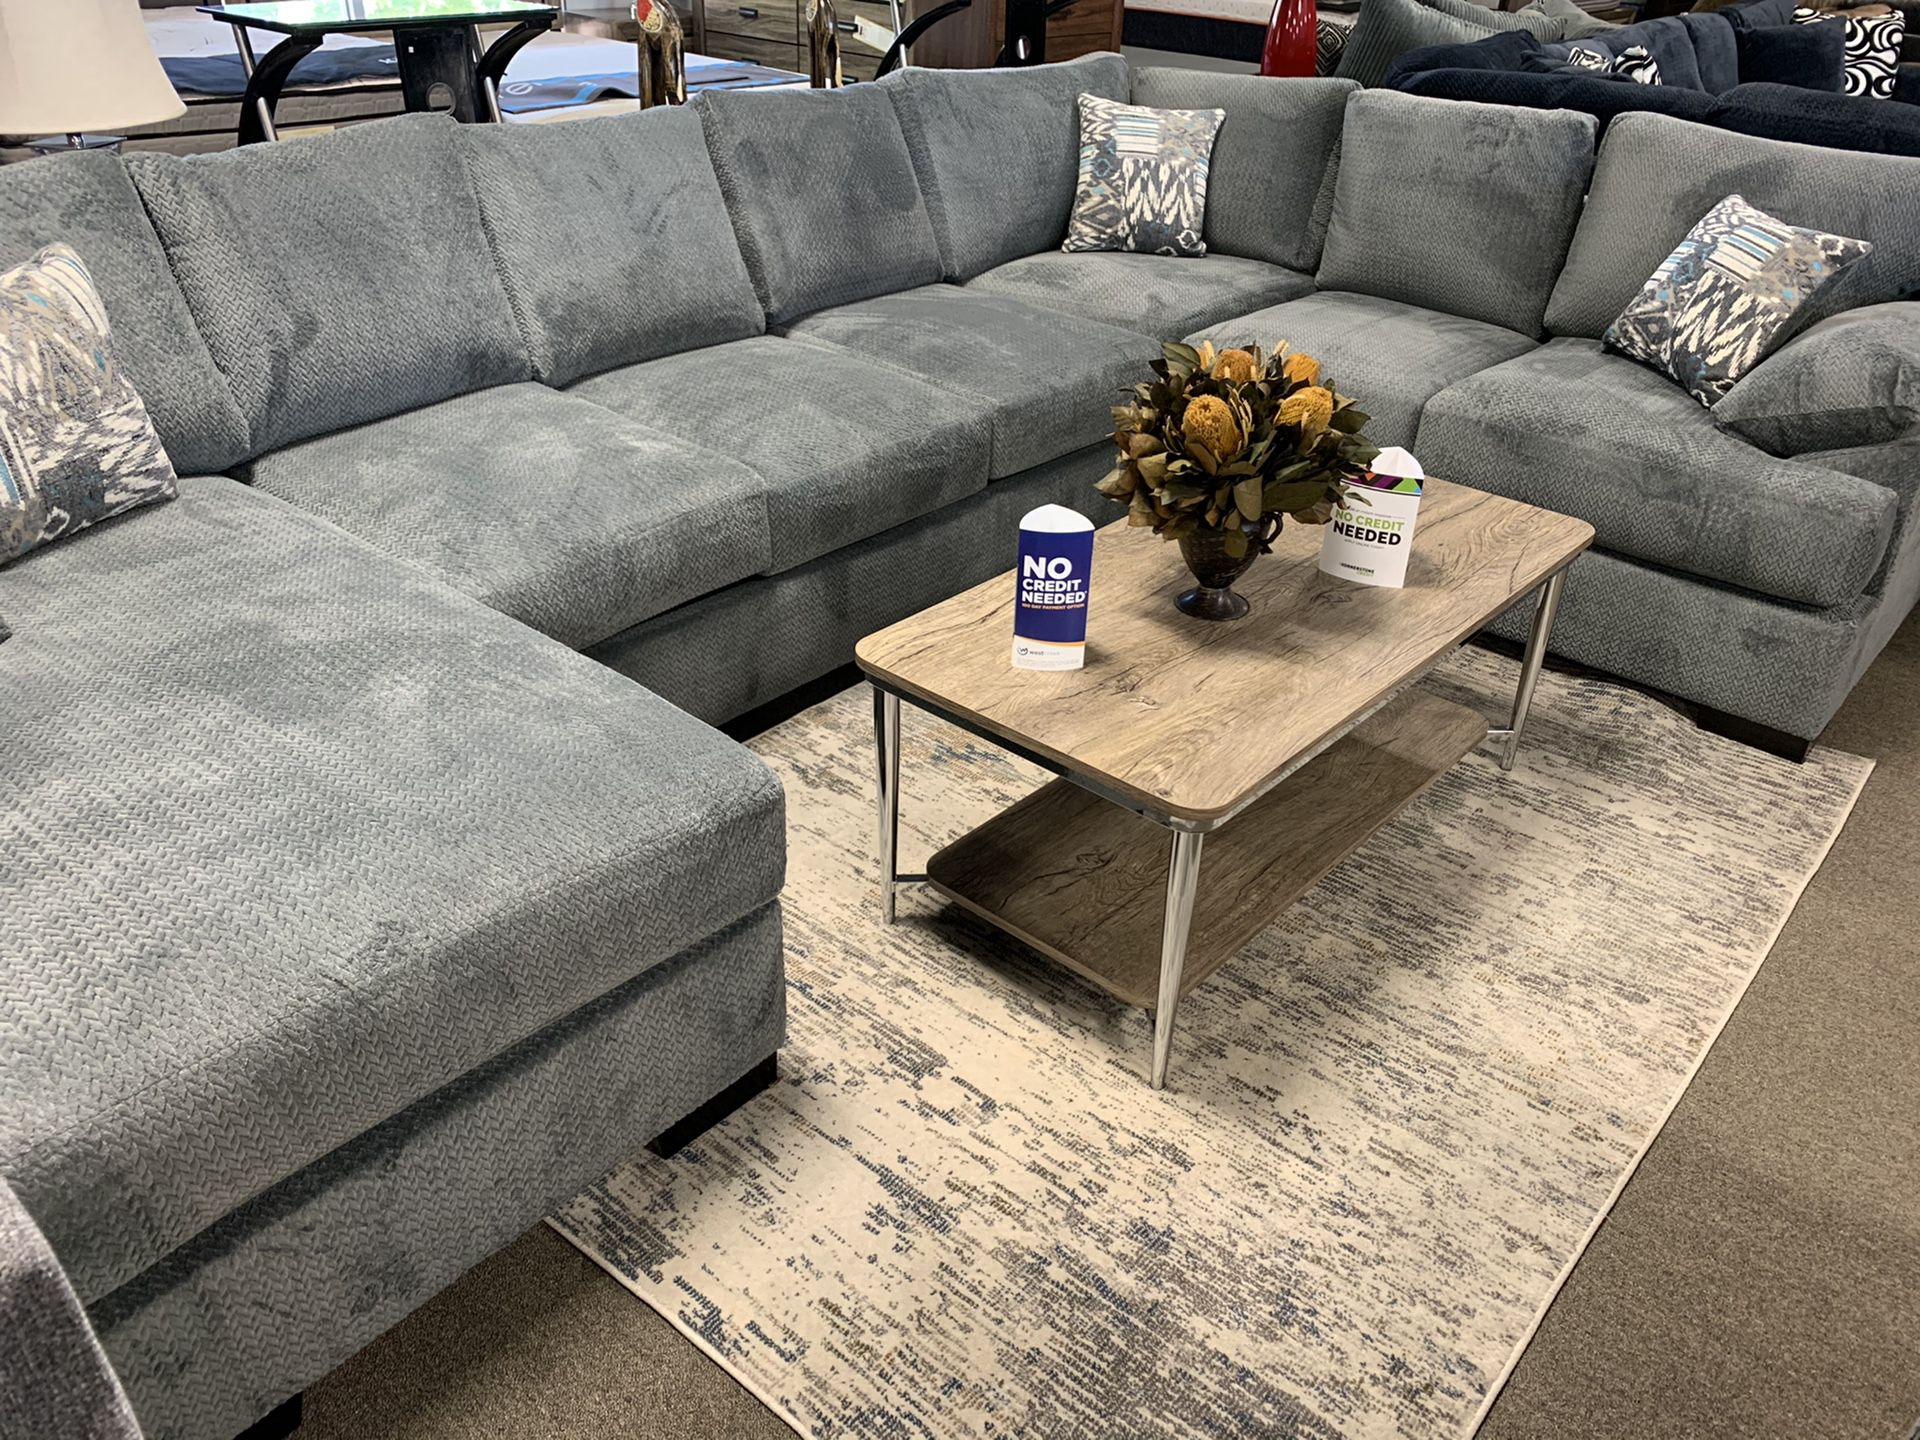 3Pc Sectional Available In Many Colors and Sizes‼️Easy Financing Available Only $27 Down 90 Days Same as Cash‼️No Credit Needed‼️